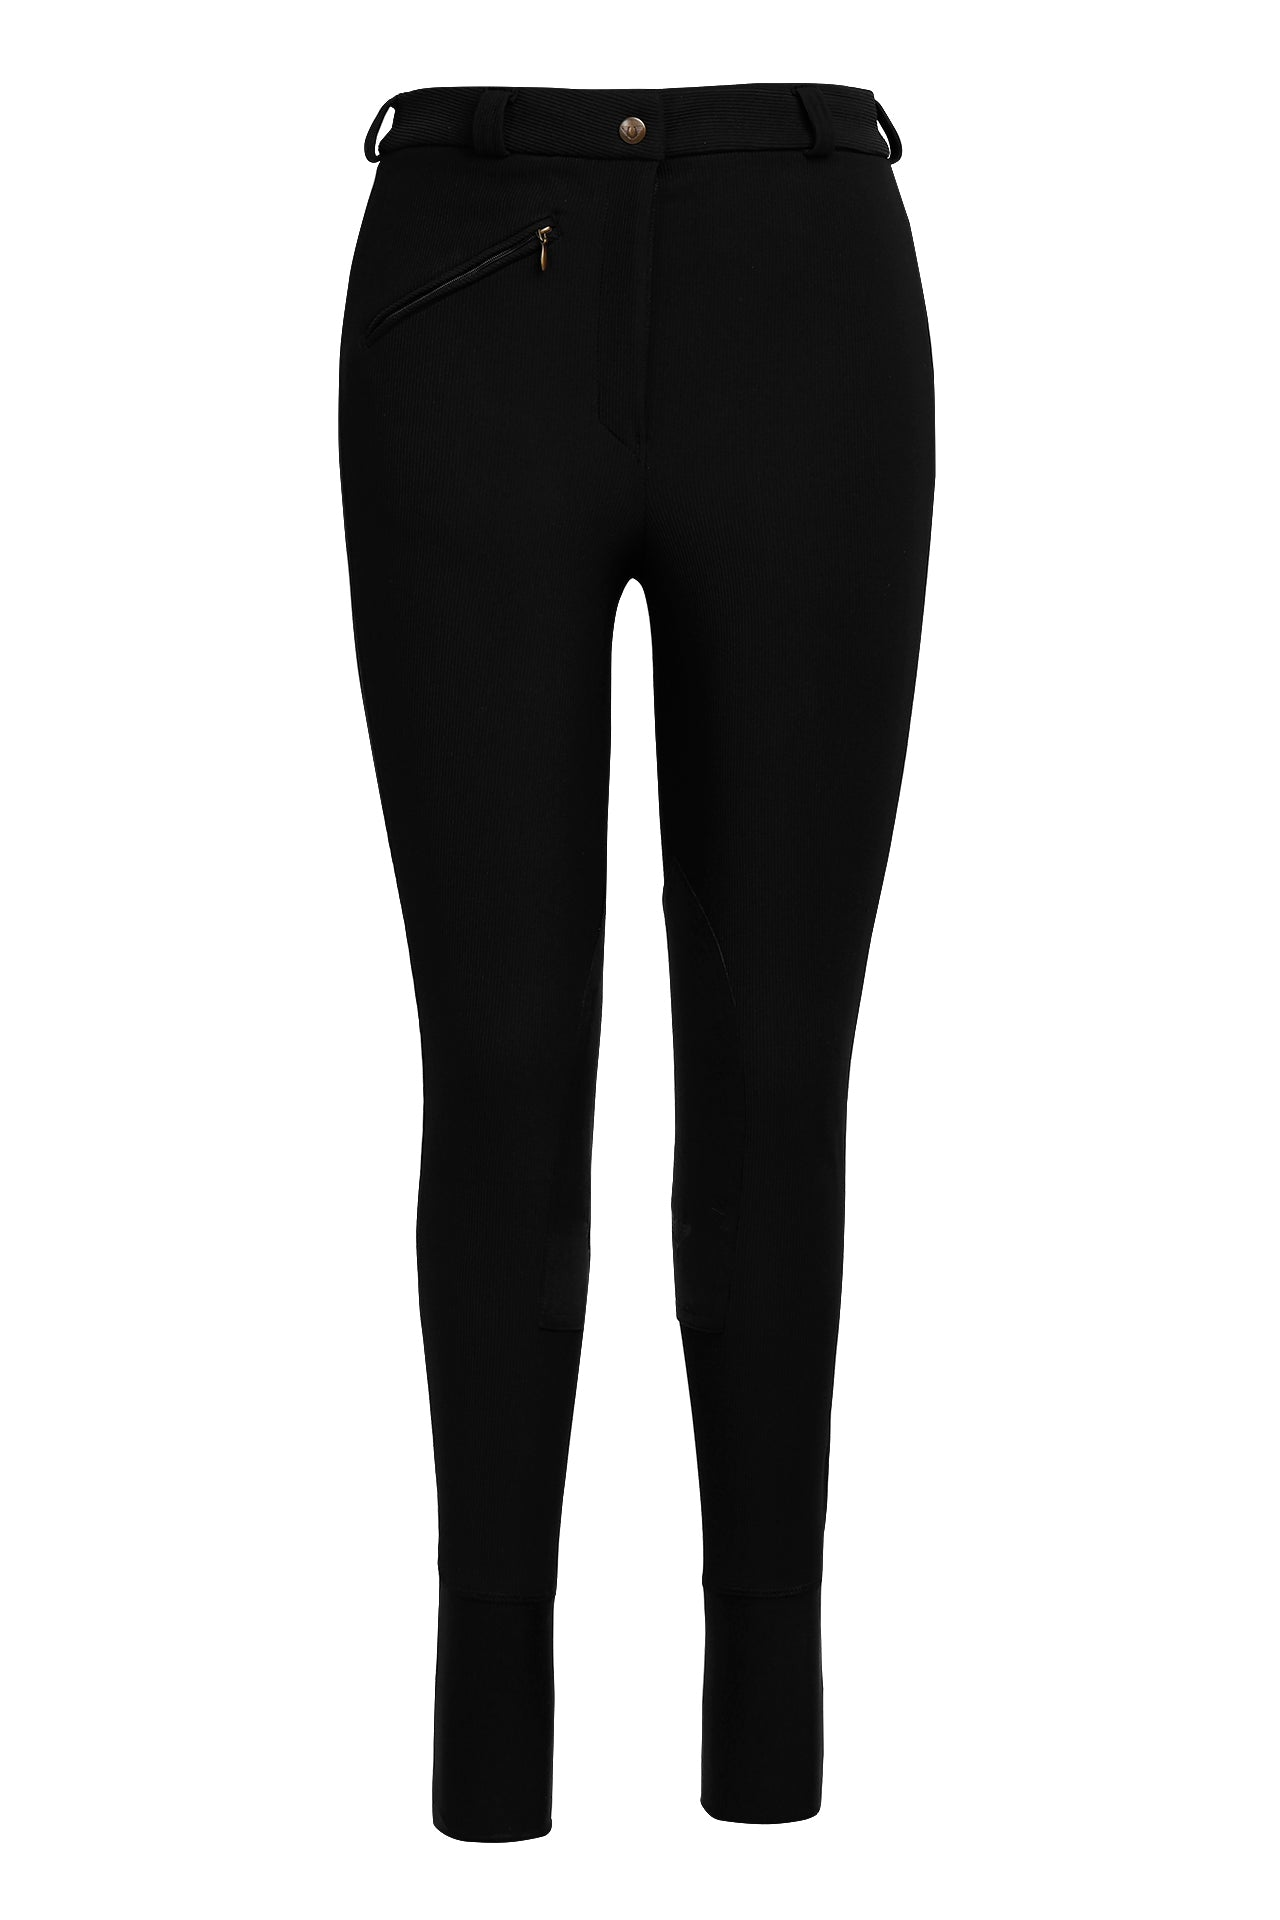 Tuffrider Ladies Long Ribb Knee Patch Breeches - Breeches.com